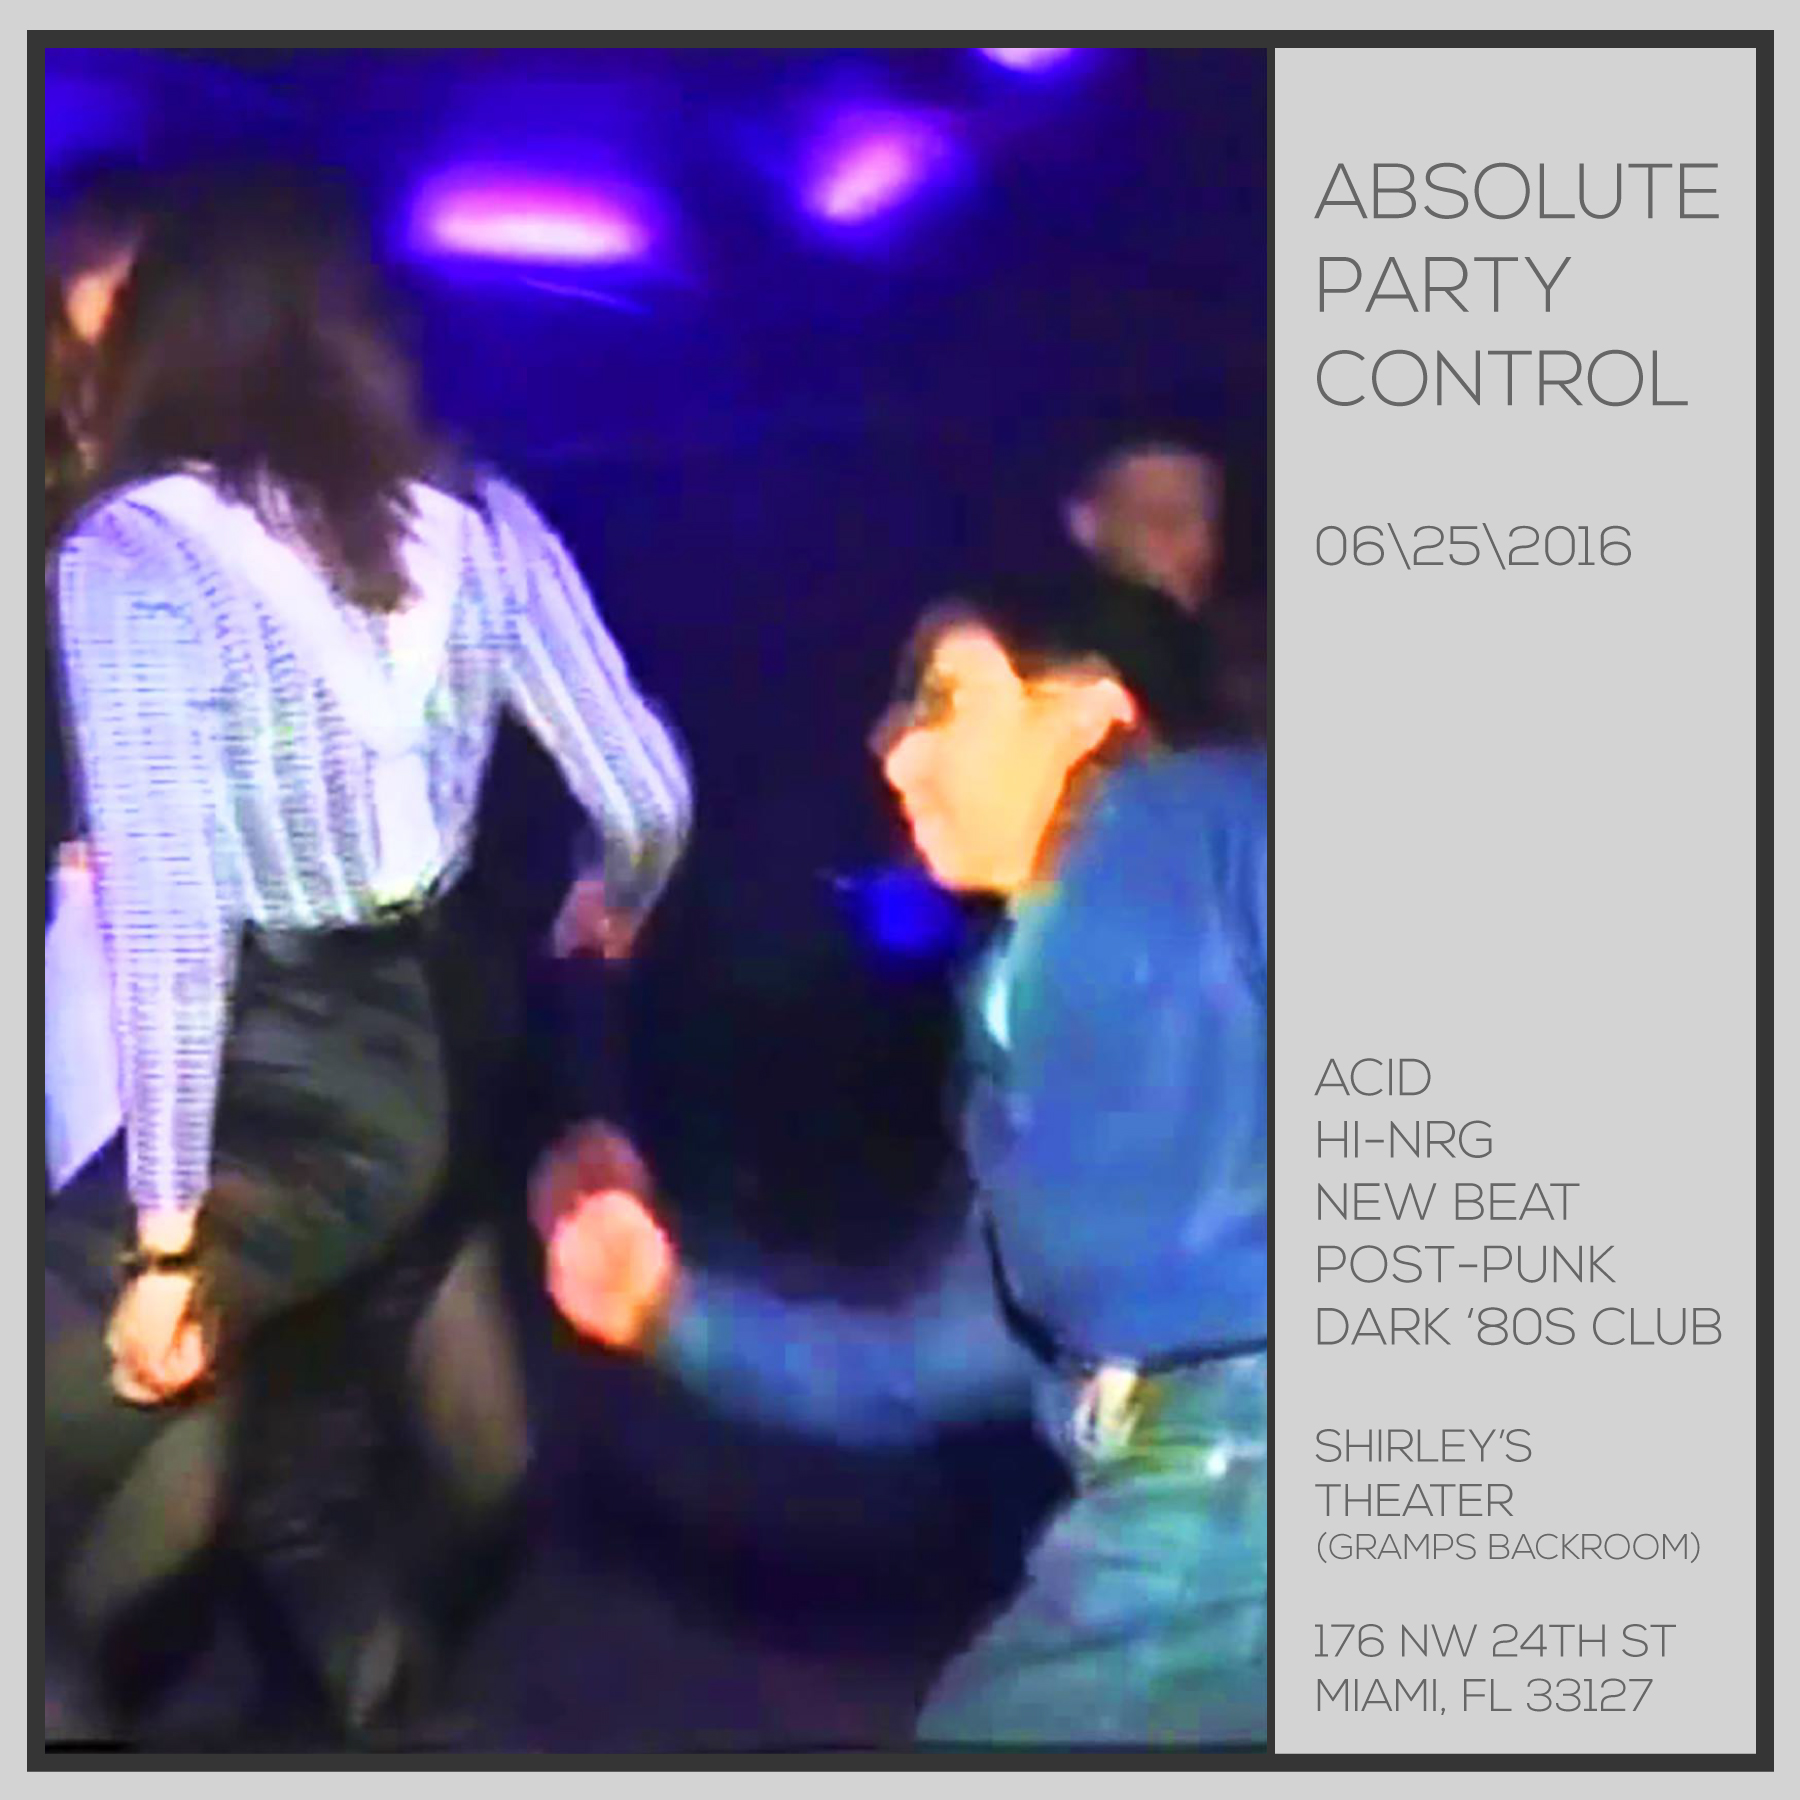 004-06-25-2016-Absolute-Party-Control